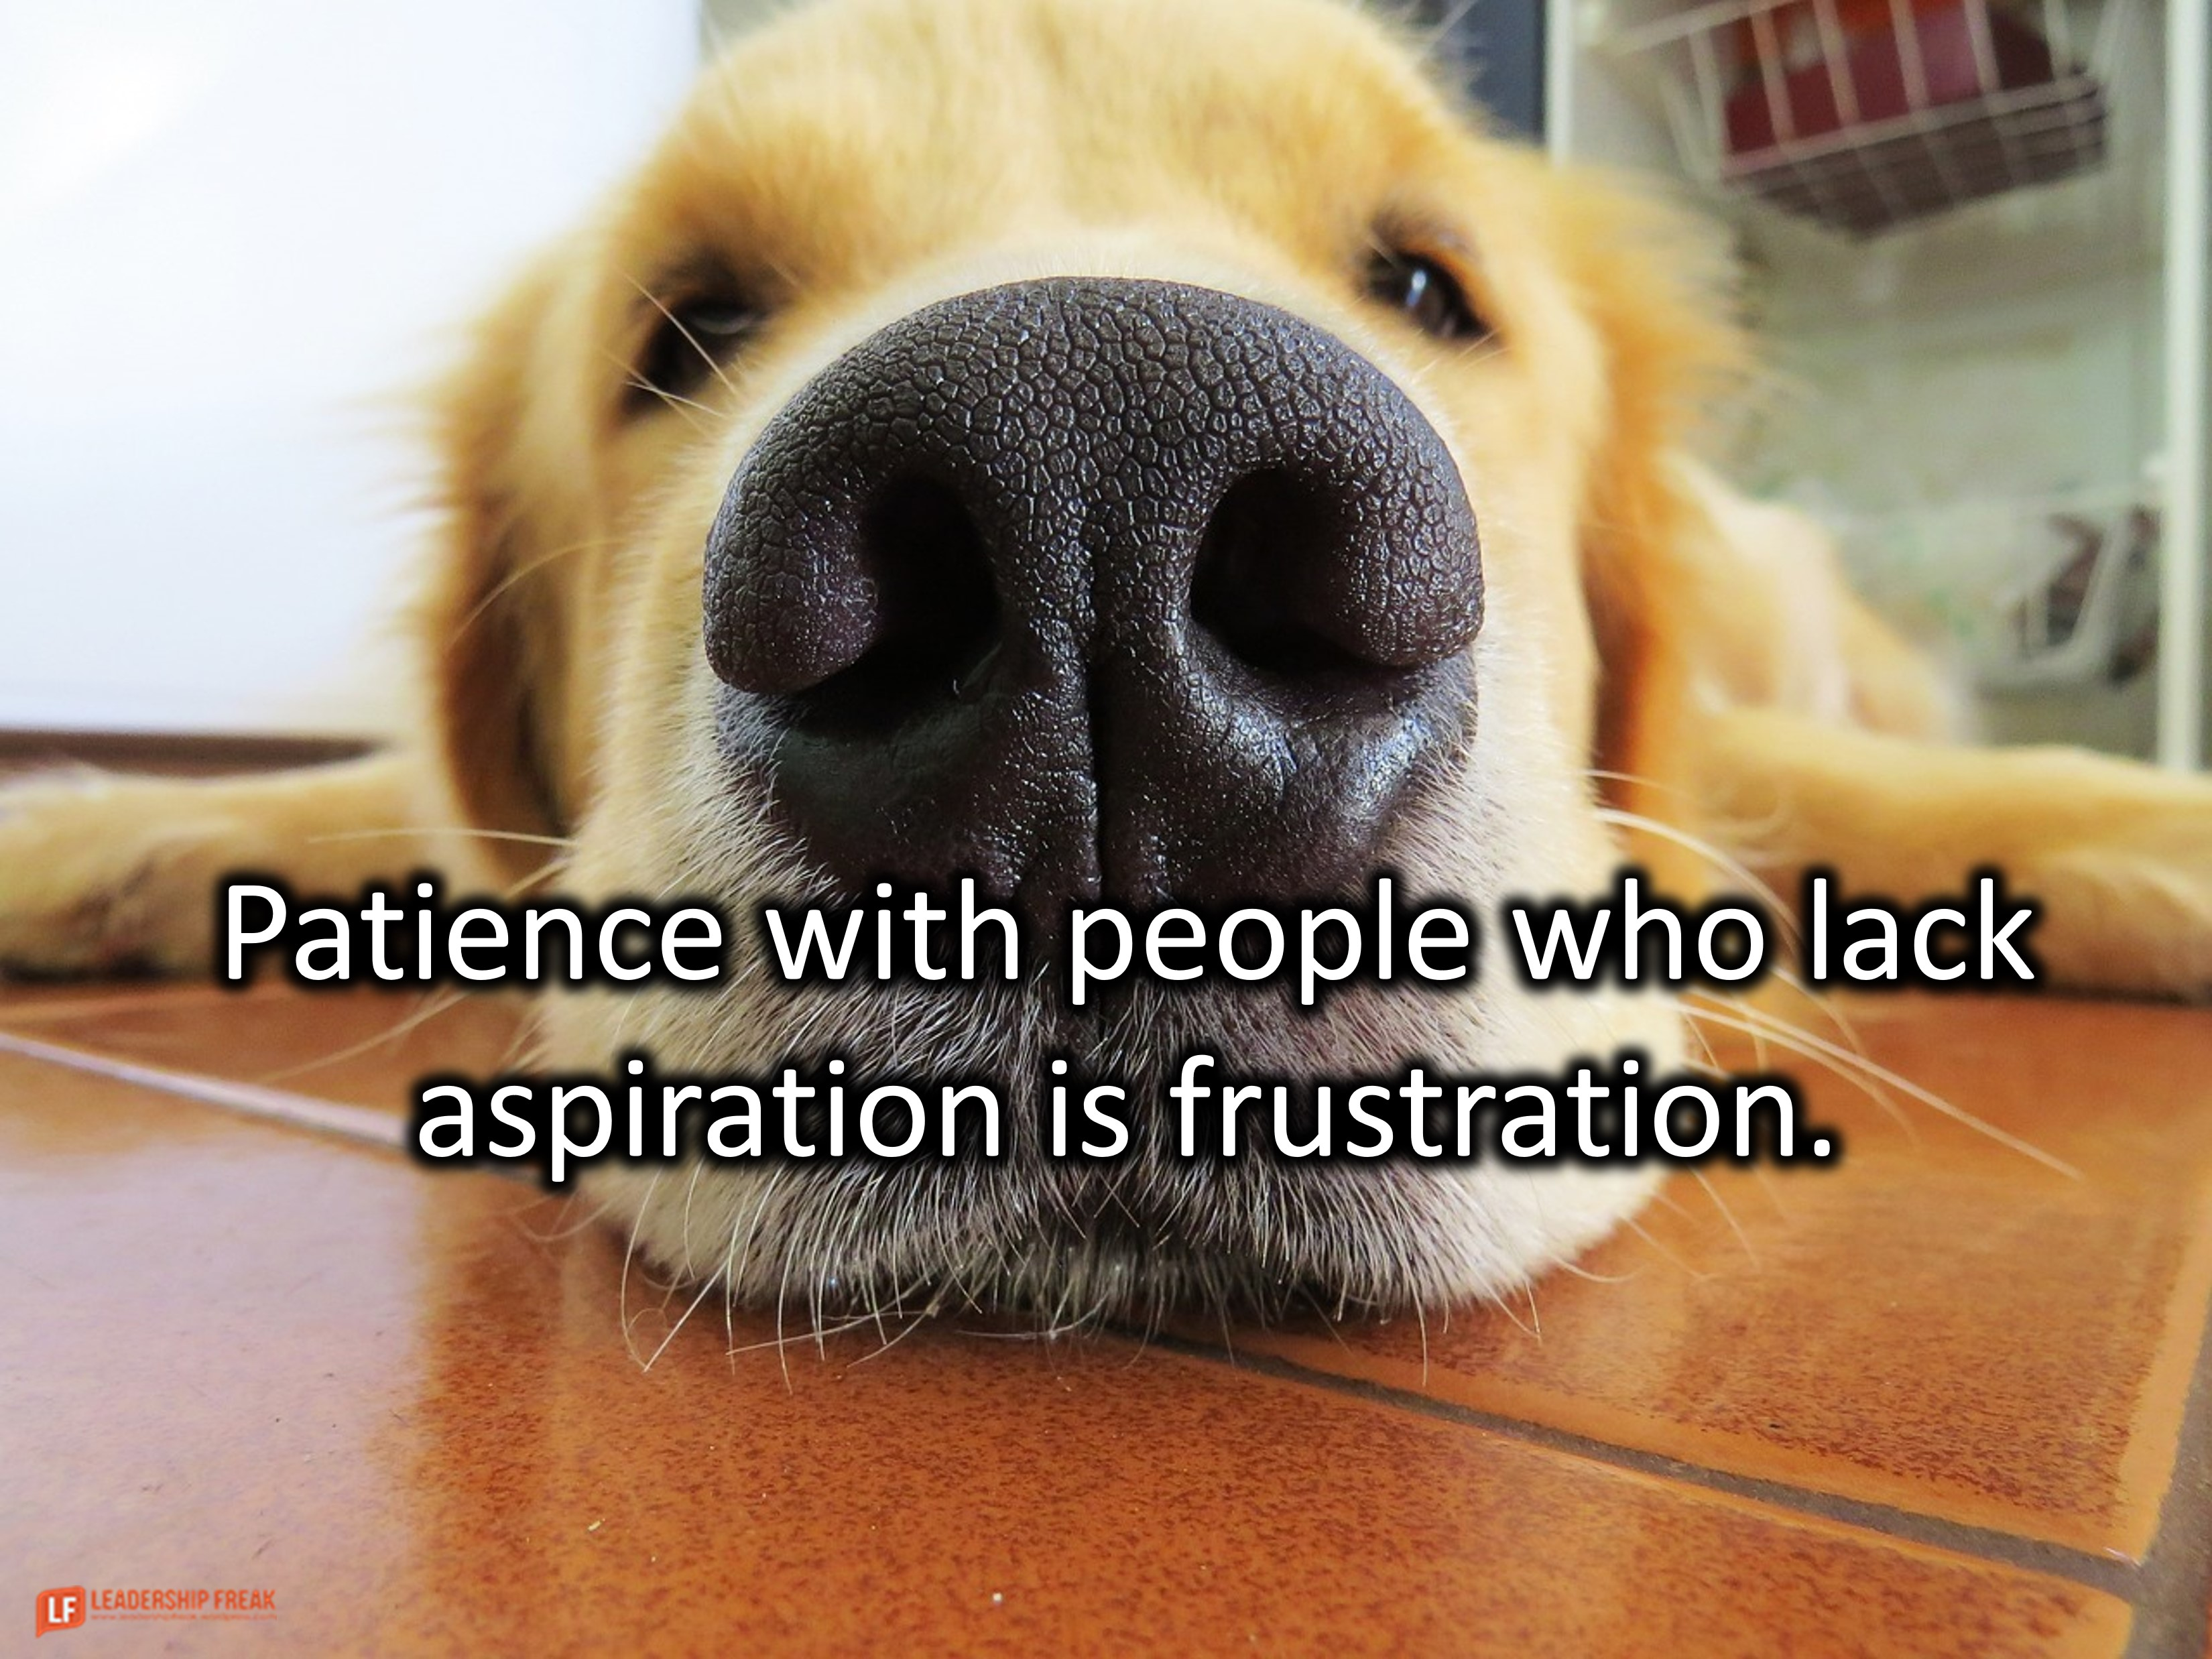 Lazy dog.   Patience with people who lack aspiration is frustration.